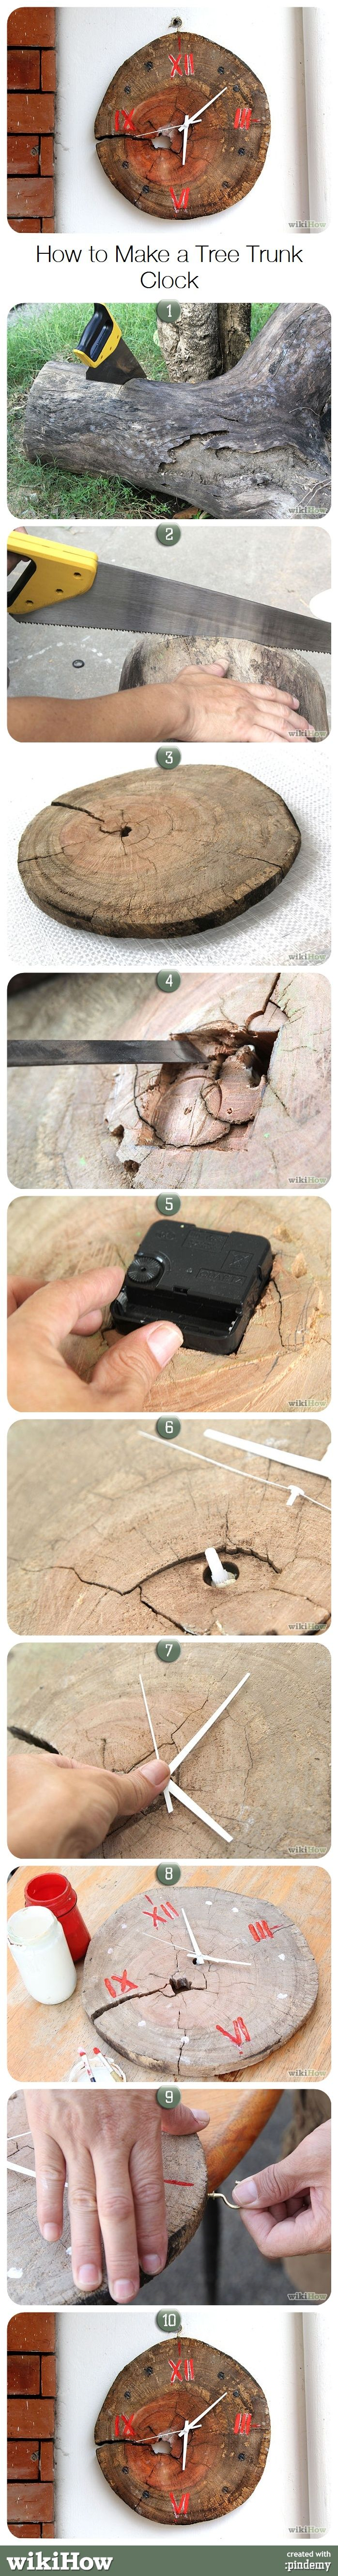 How to Make a Tree Trunk Clock